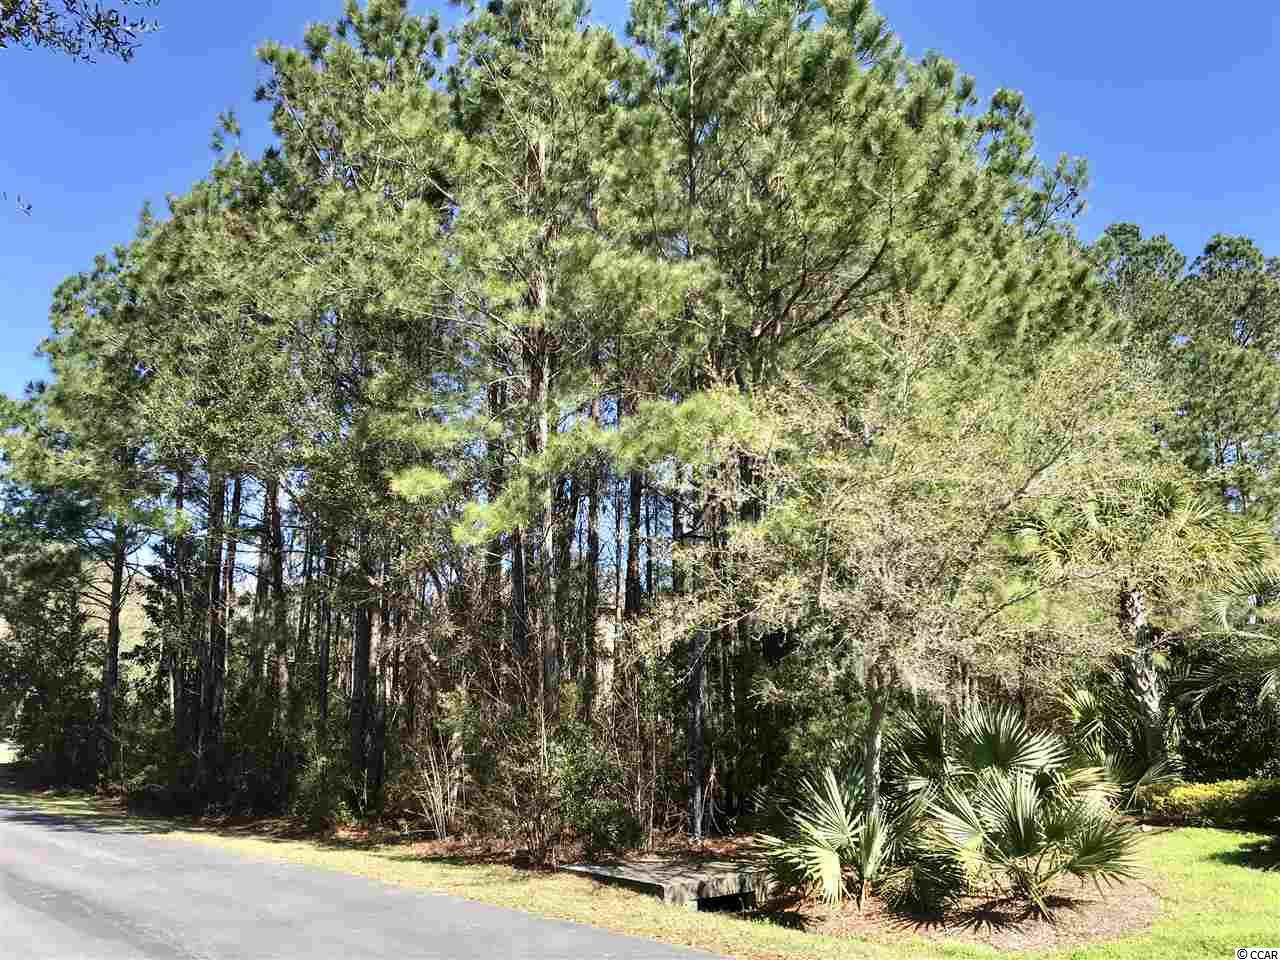 Land for Sale at 232 Olde Canal Loop, Lot 246 232 Olde Canal Loop, Lot 246 Pawleys Island, South Carolina 29585 United States